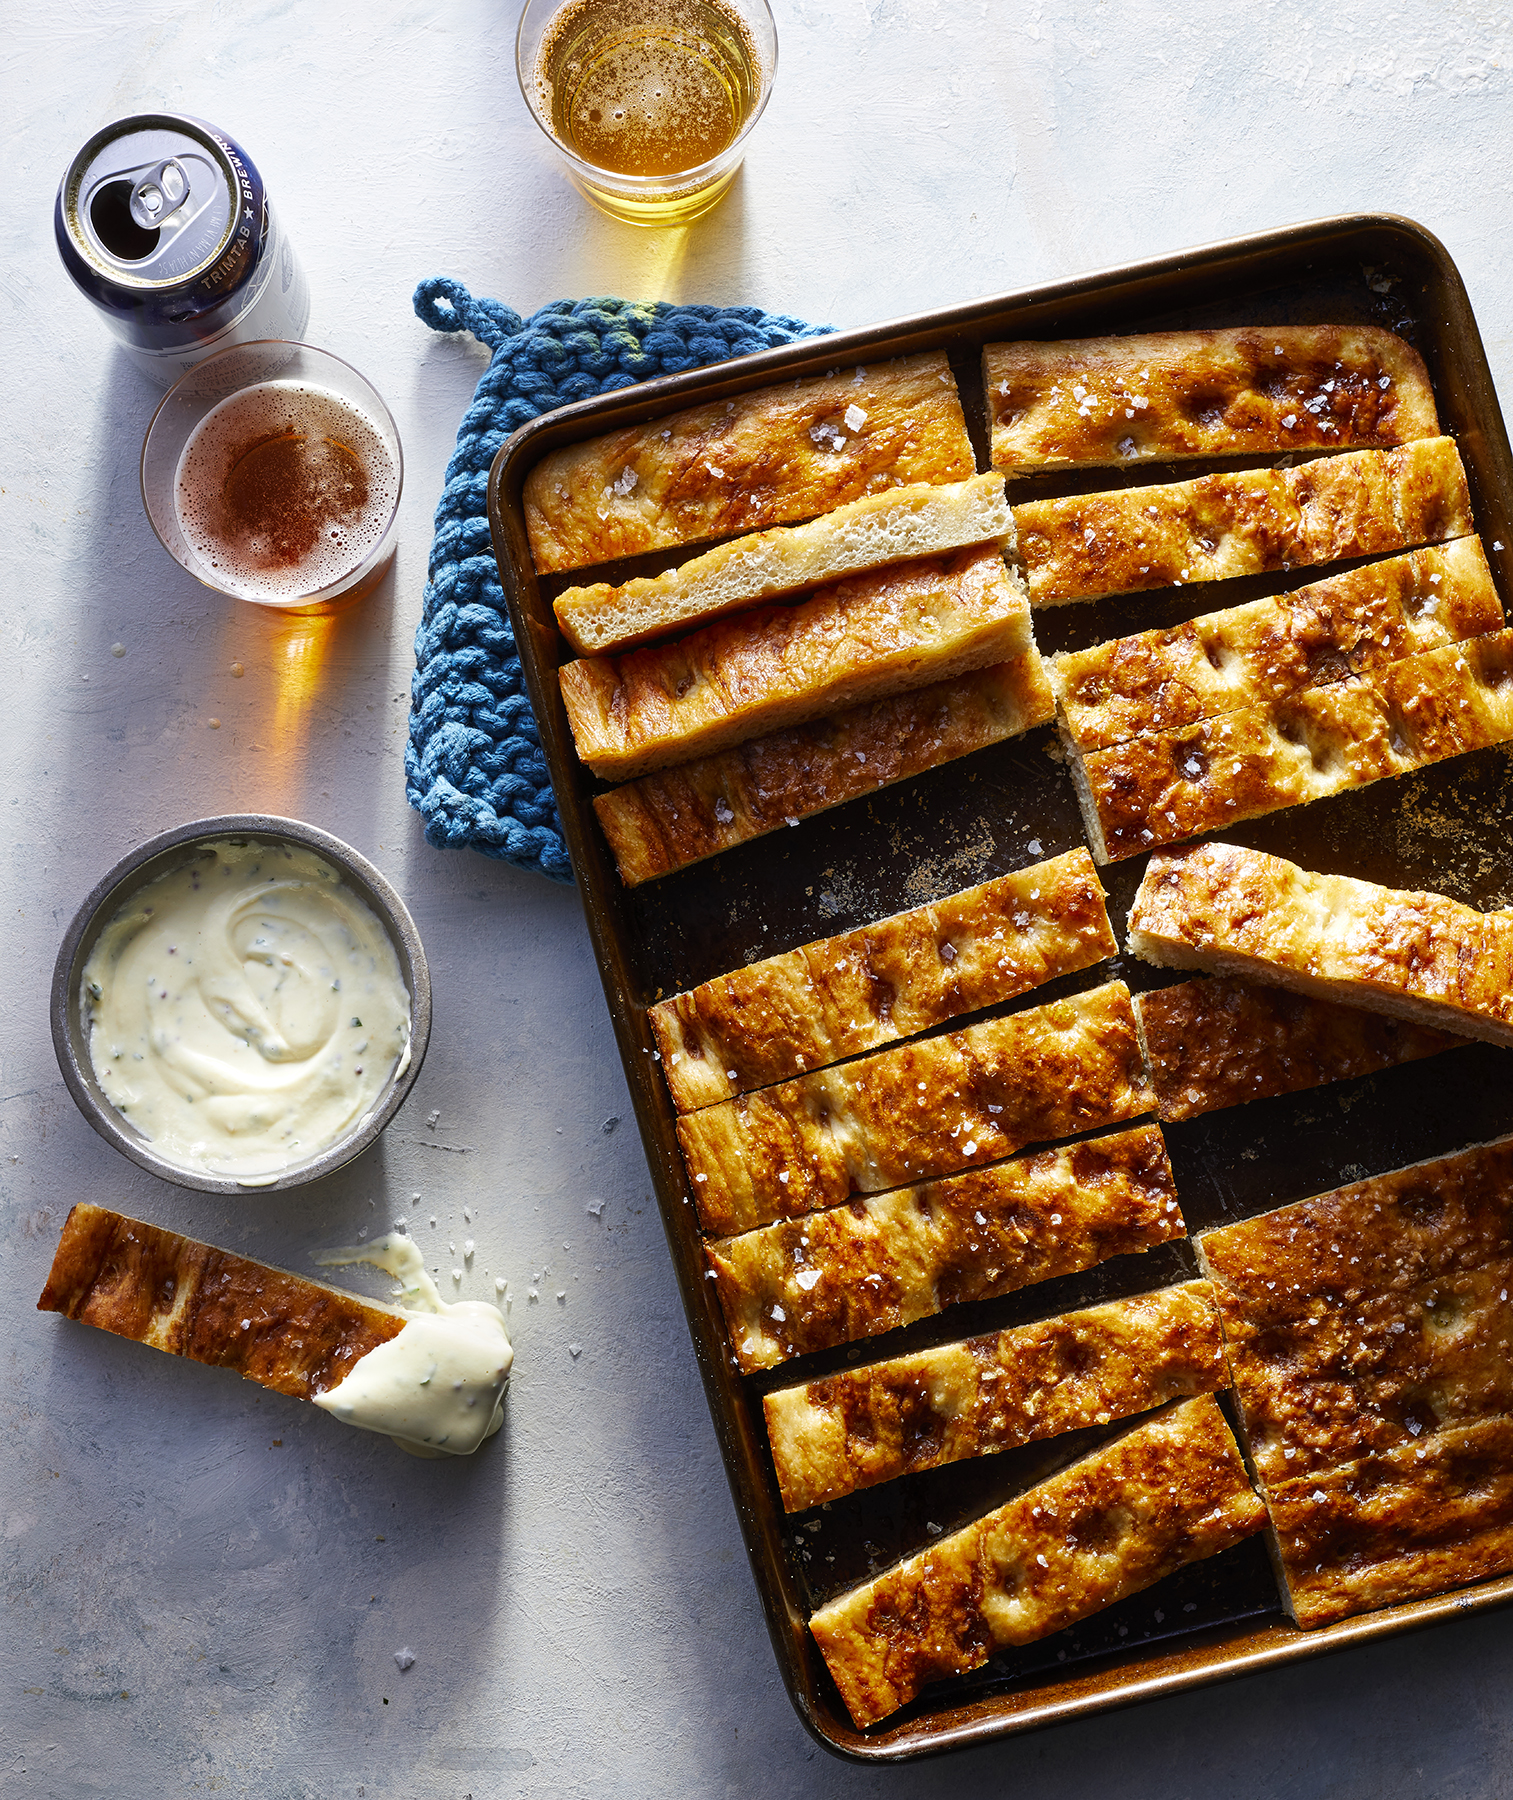 Easy Super Bowl Snacks: Sheet Pan Pretzel Focaccia With Cheese Sauce Recipe